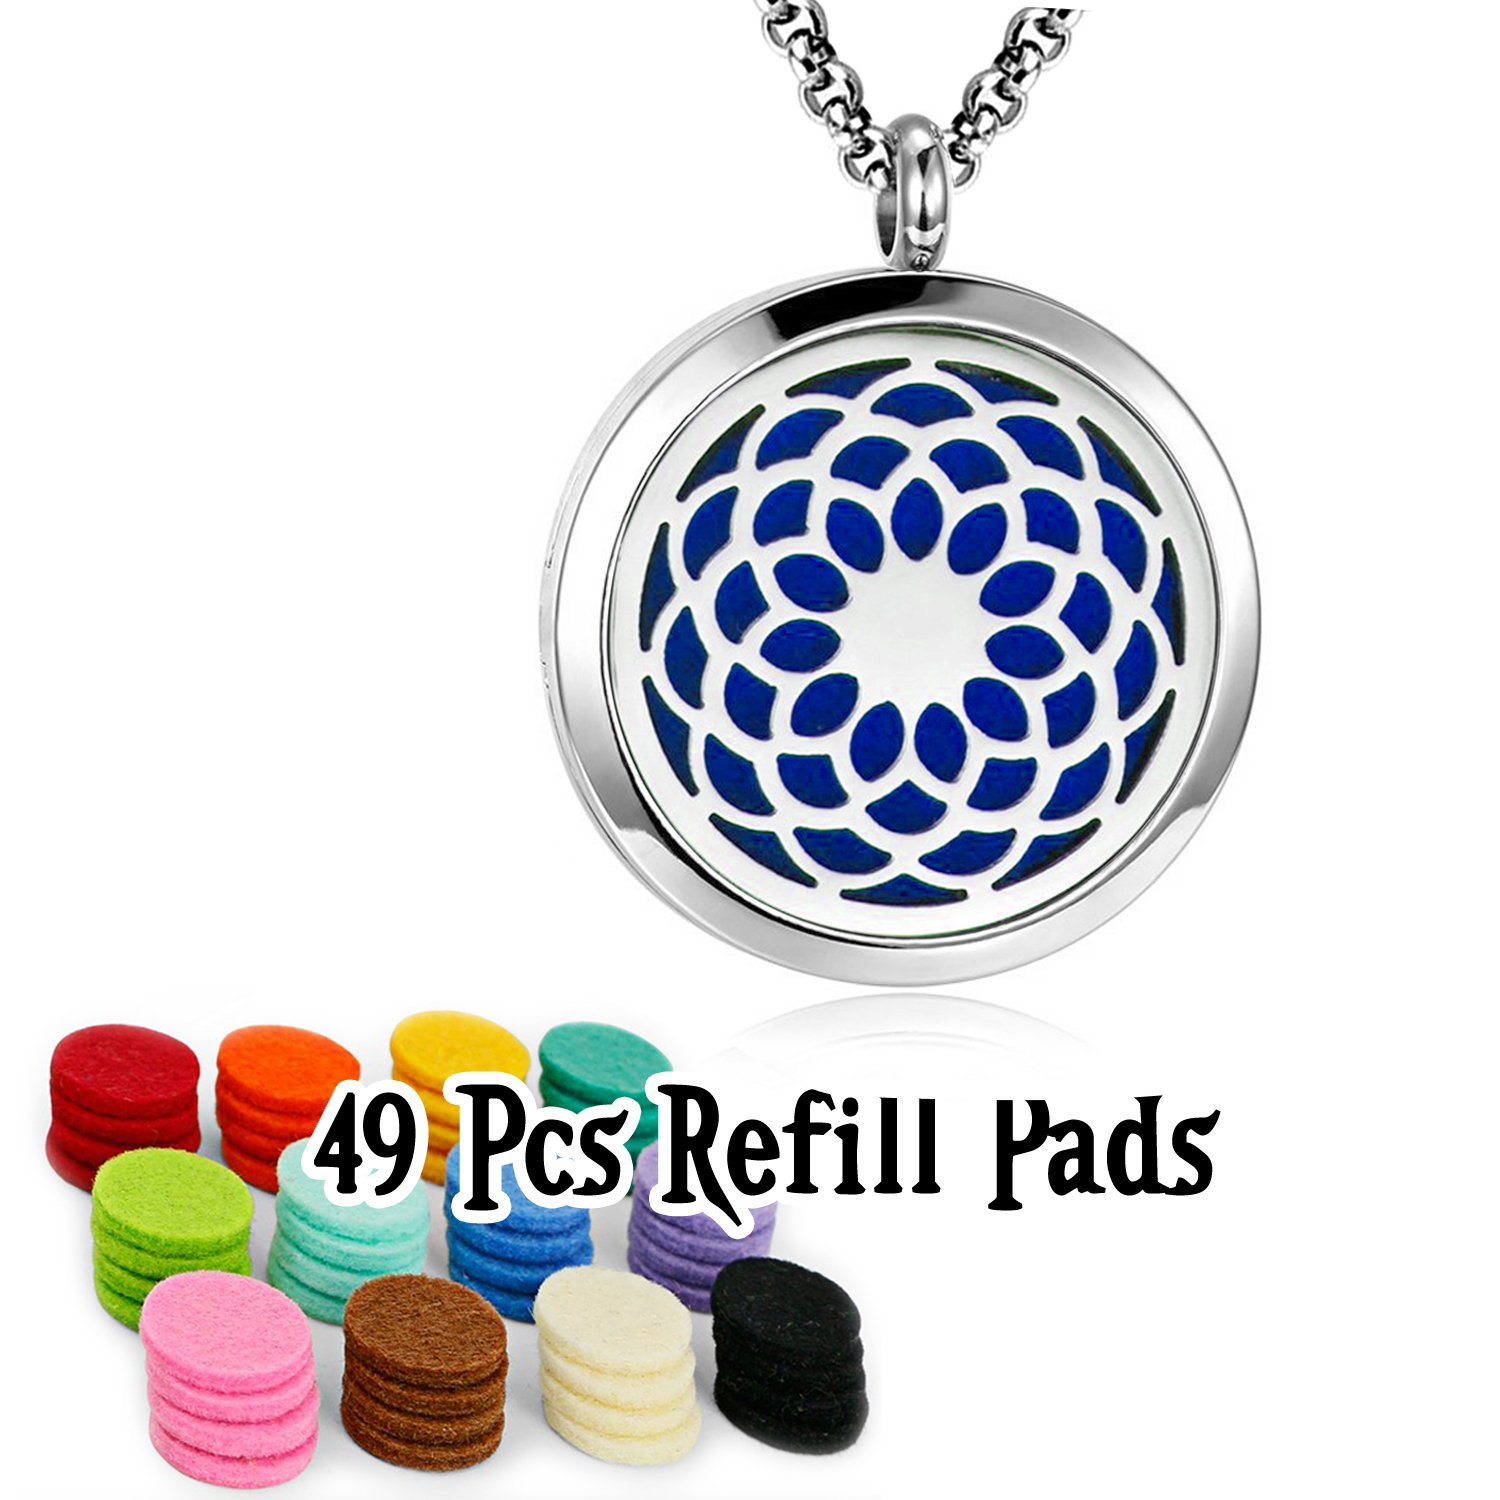 YOUFENG Essential Oil Necklace Diffuser Family Tree of Life Necklace Pendant Aromatherapy Locket 49 Refill Pads HJFL018-49